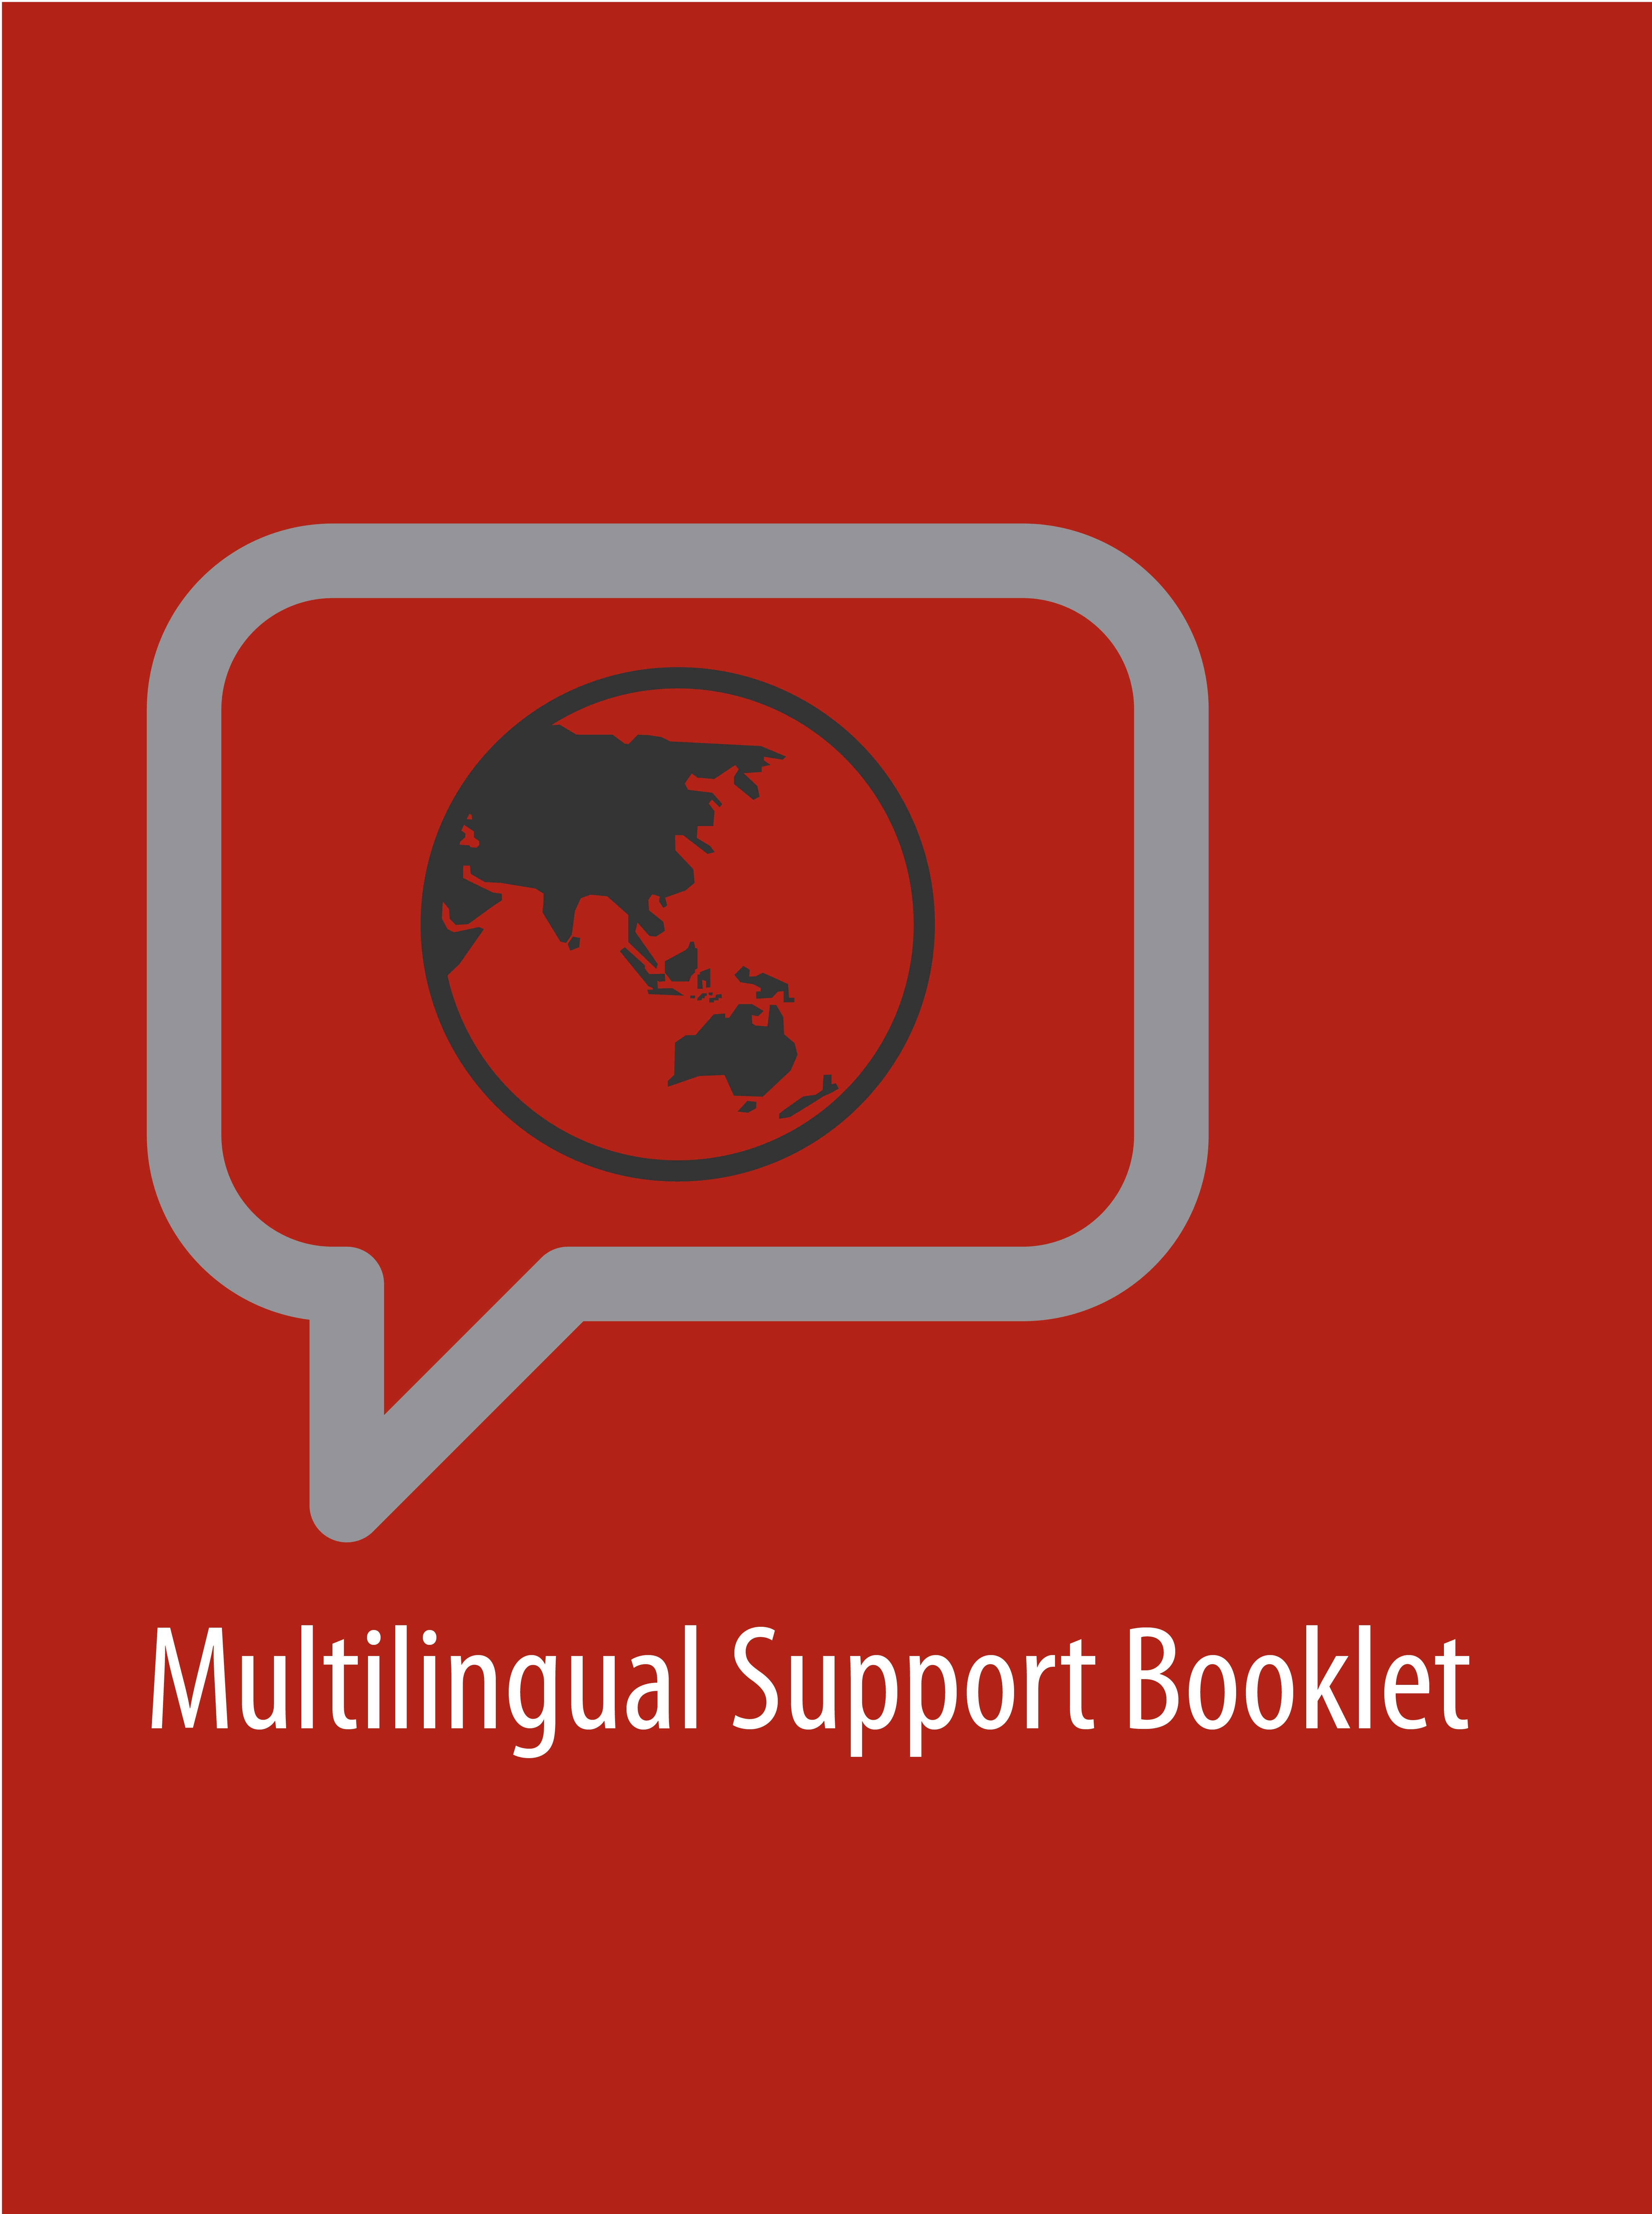 Multilingual Support Booklet - Cover.jpg